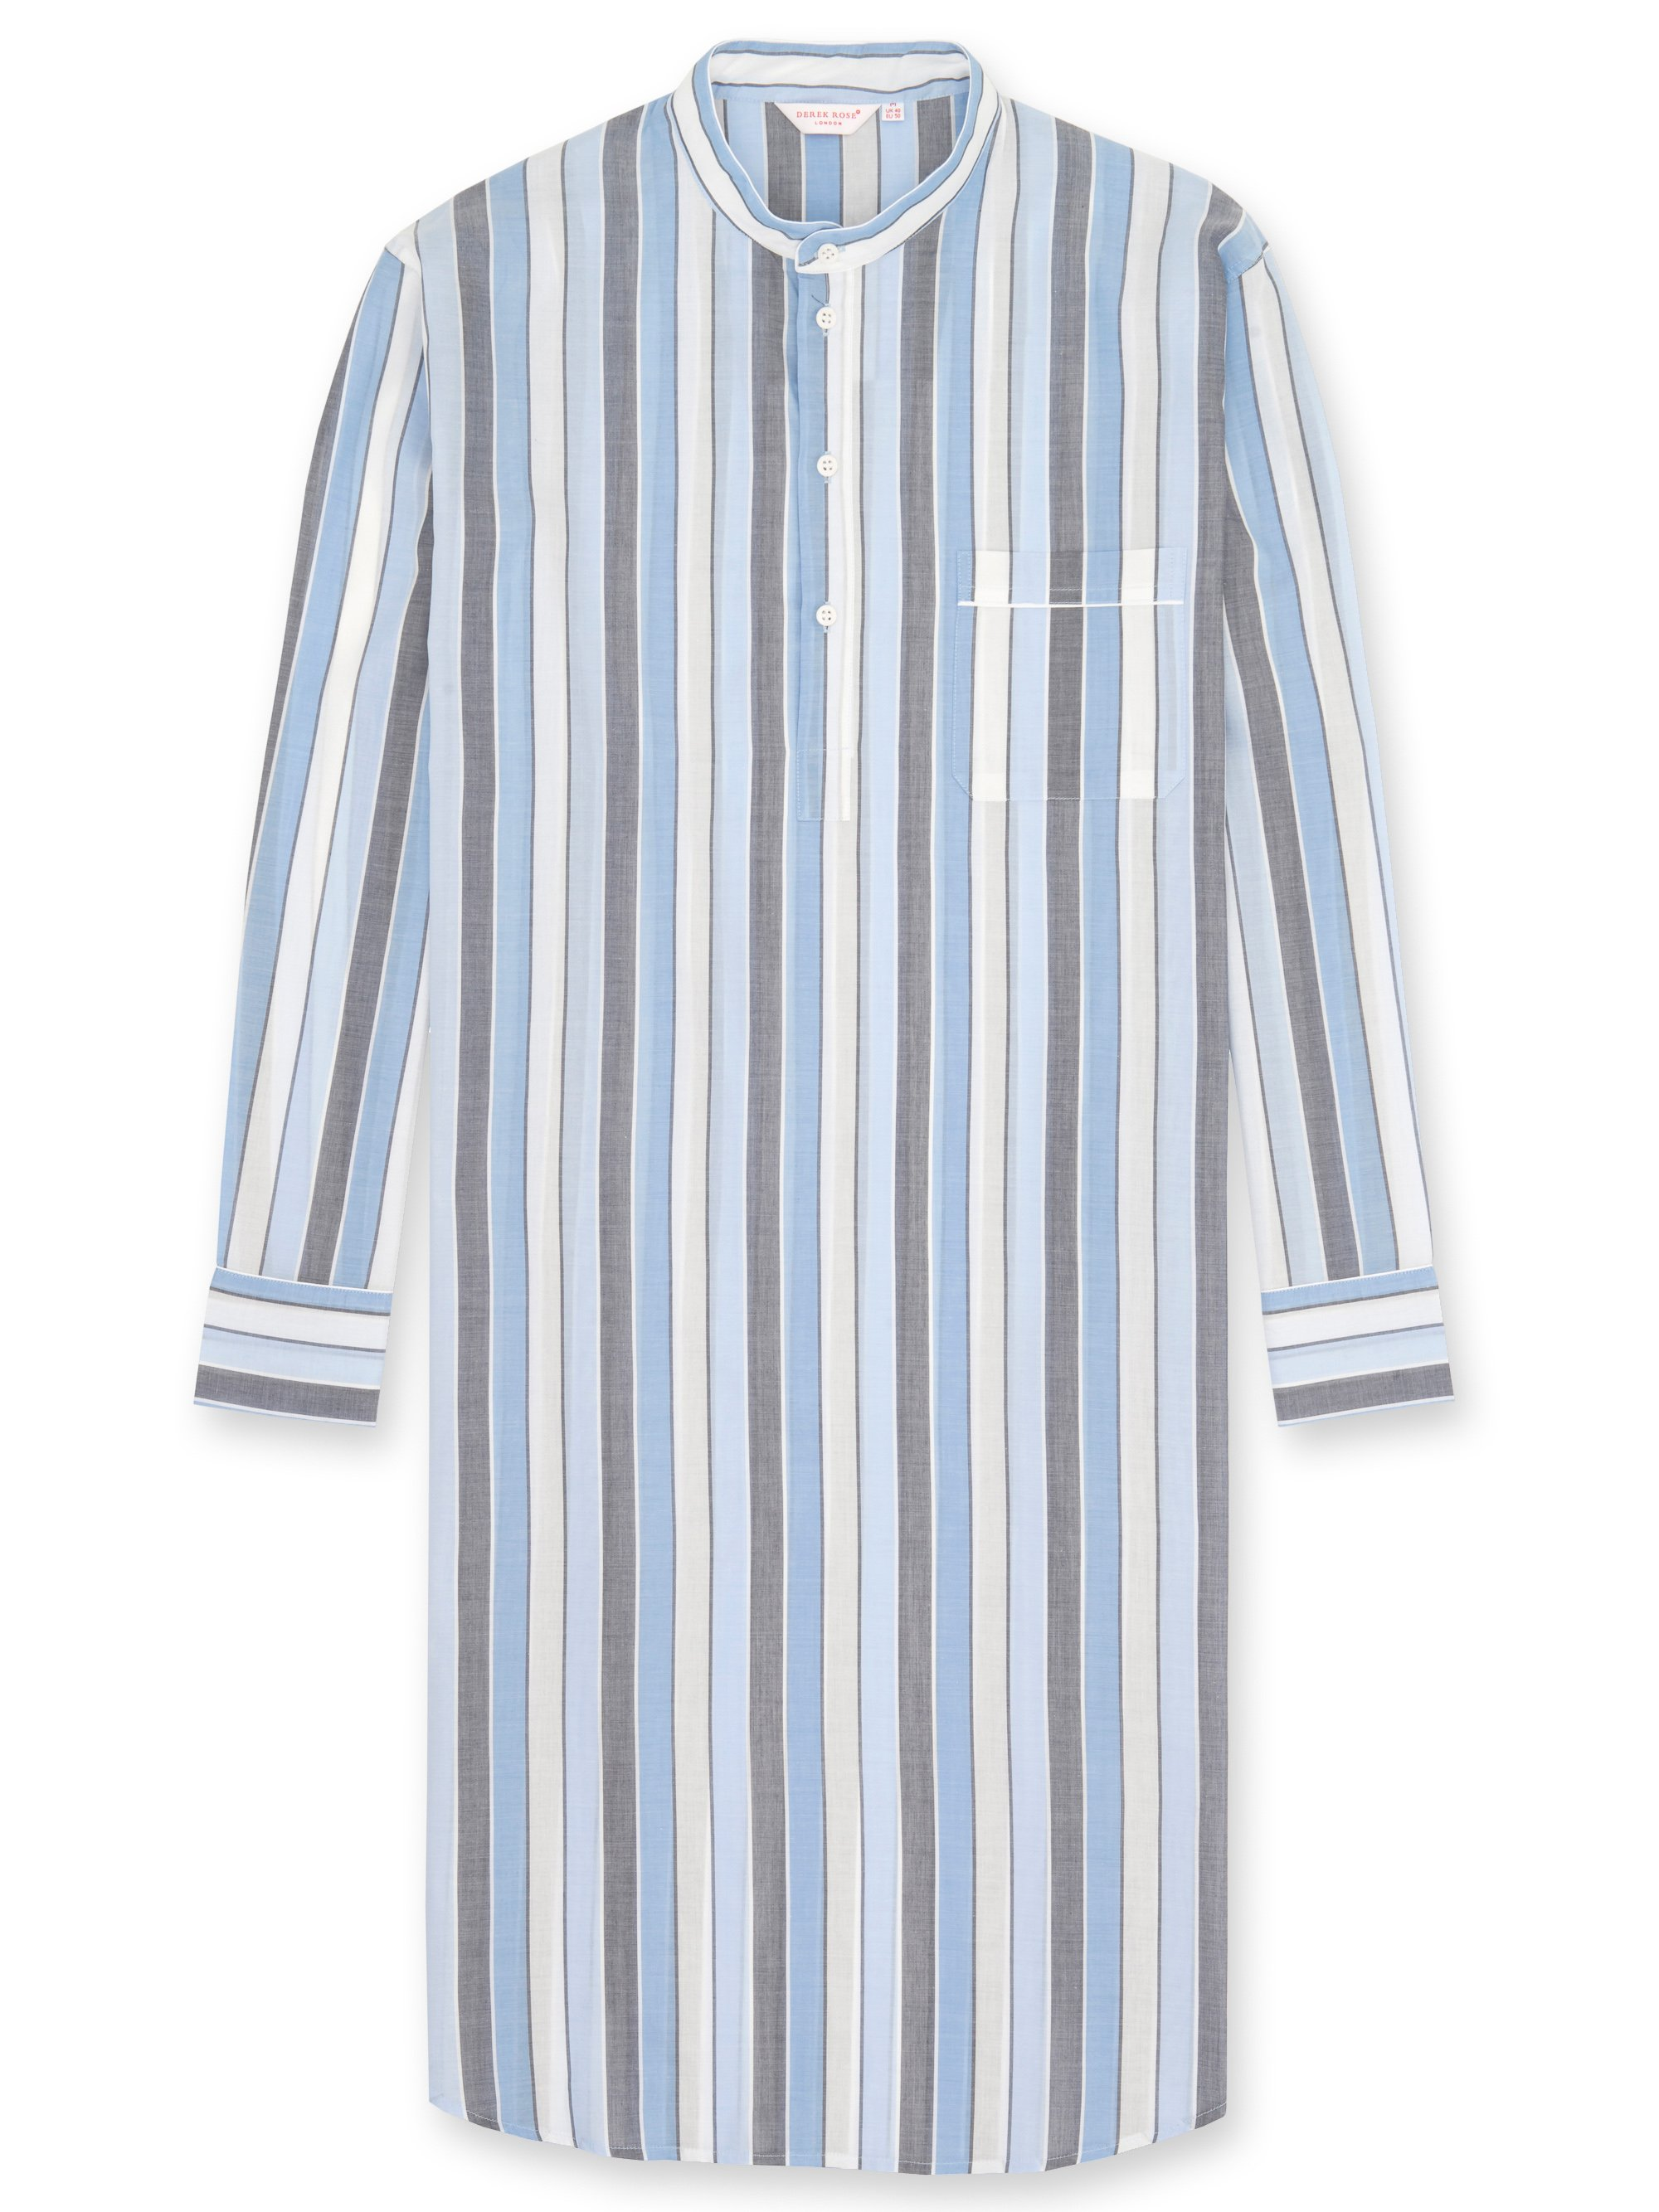 Amalfi 8 Blue Nightshirt